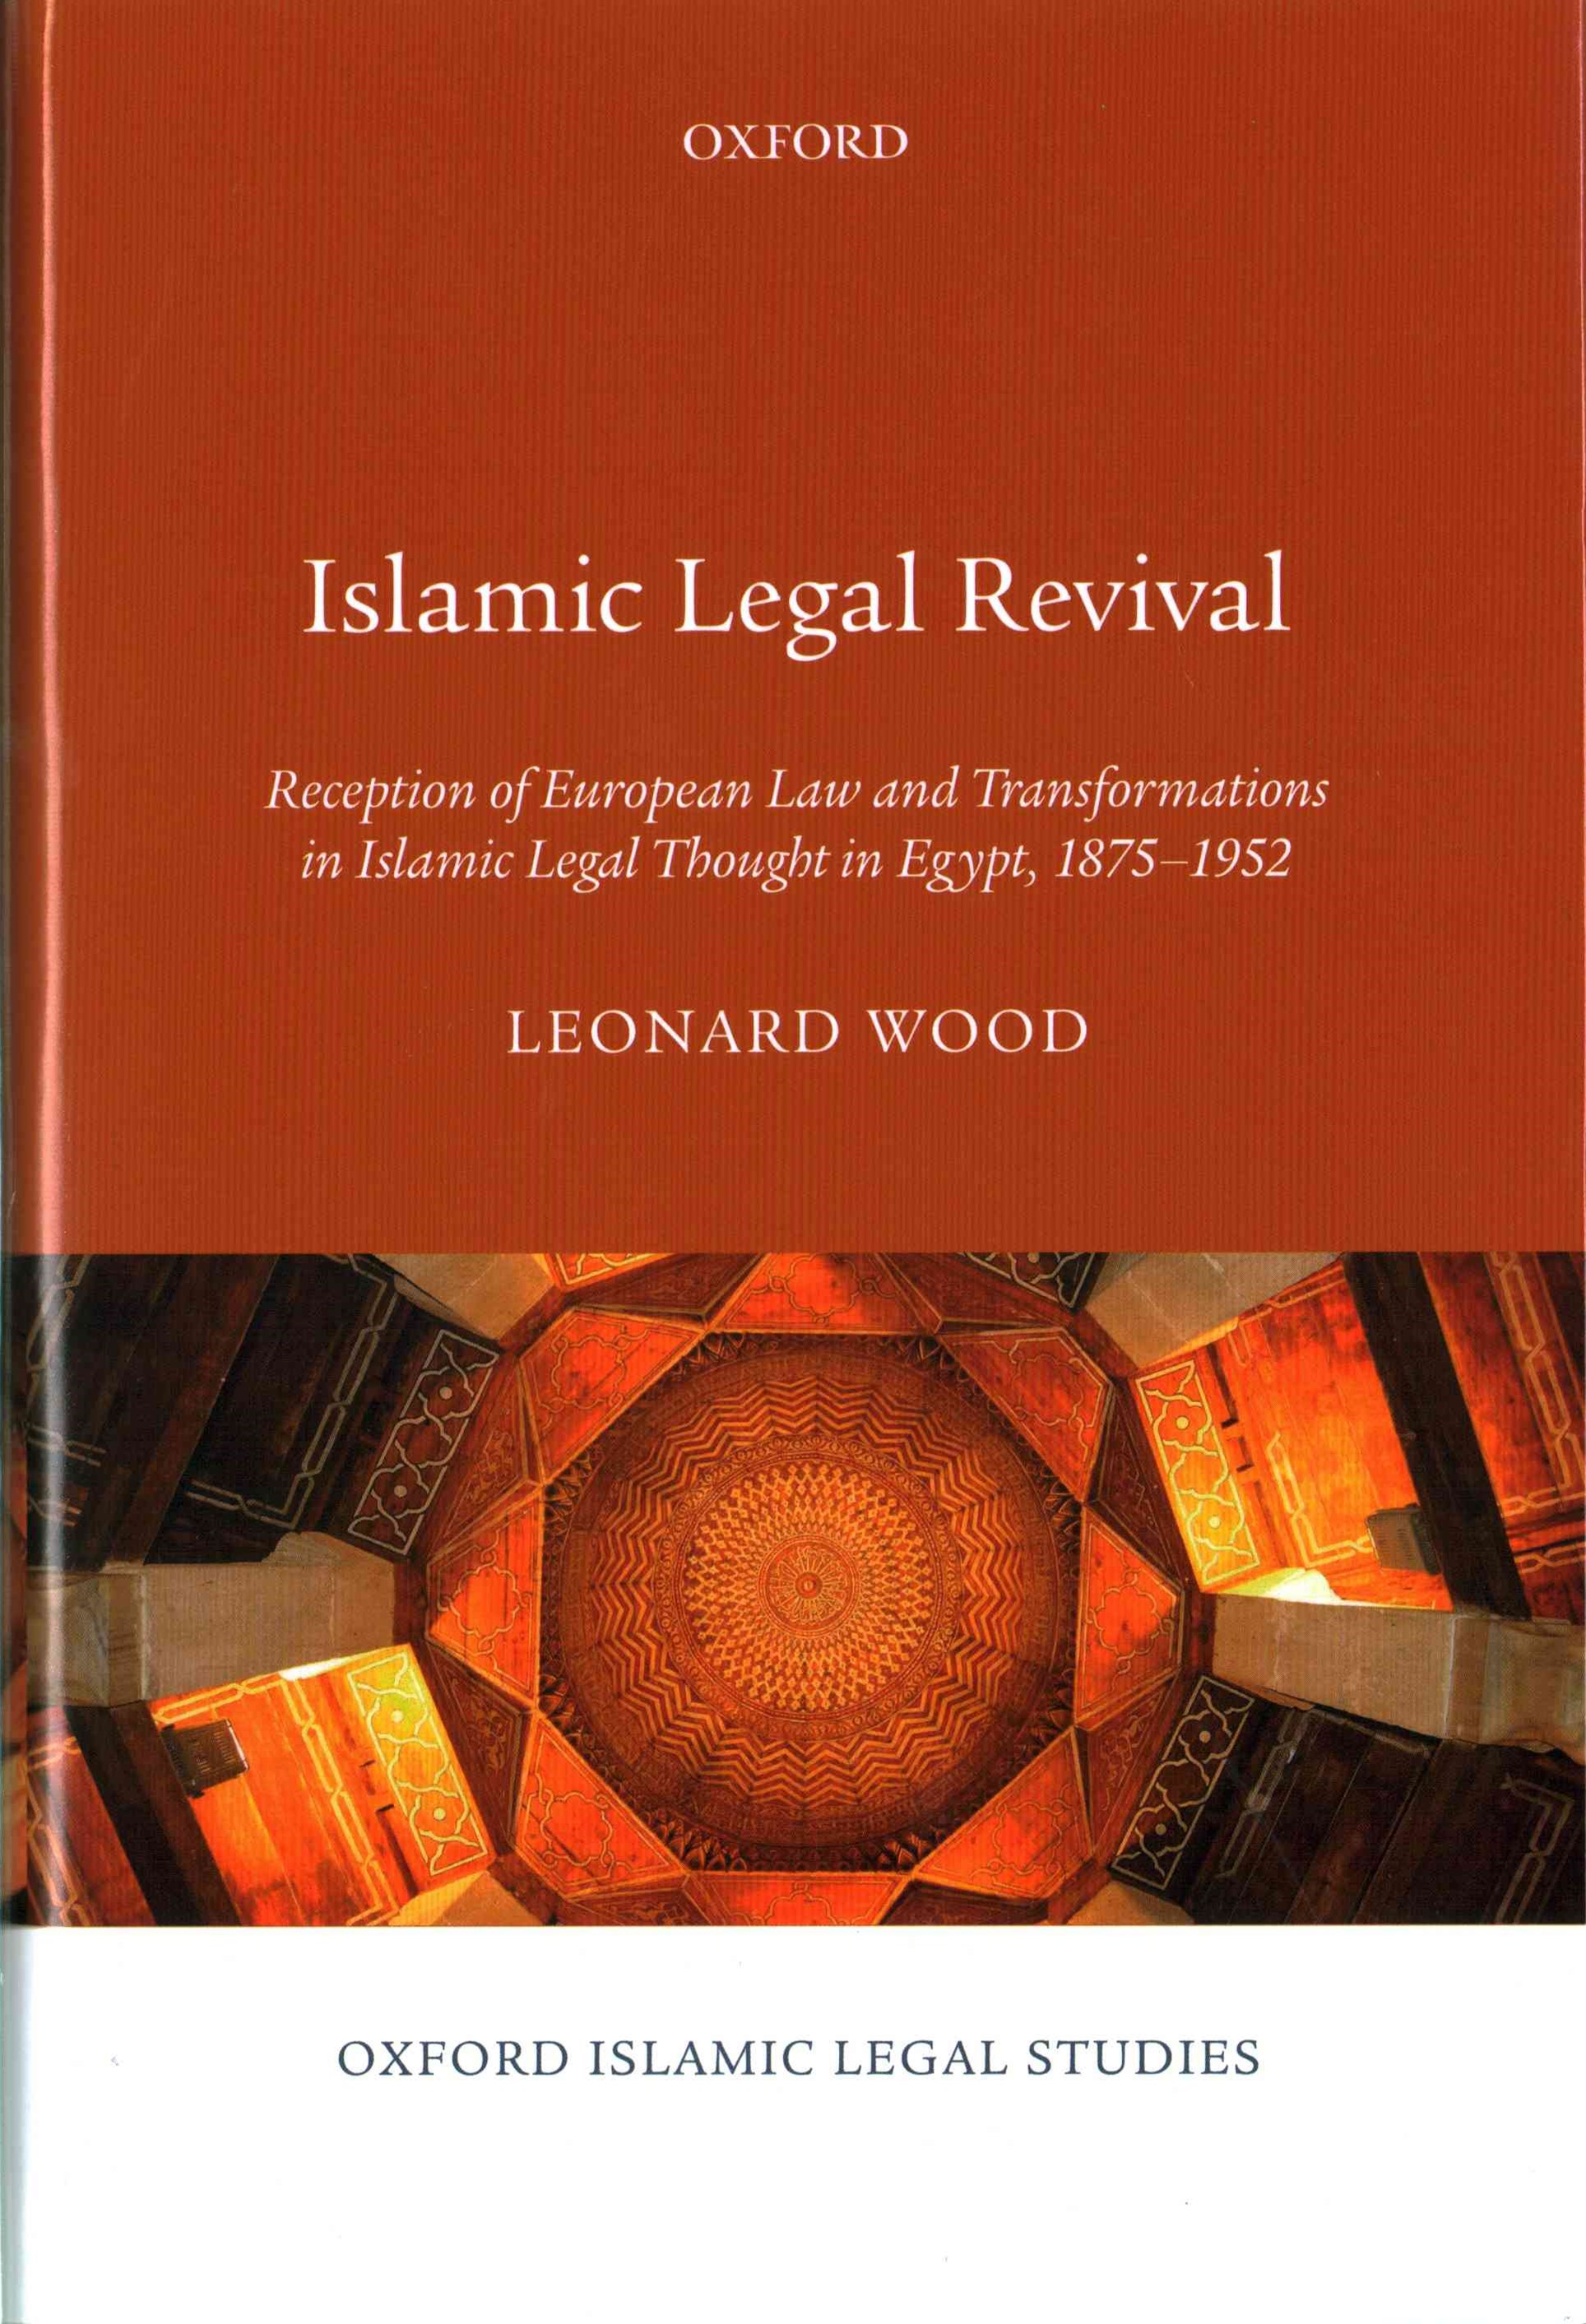 Islamic Legal Revival: Reception of European Law and Transformations in Islamic